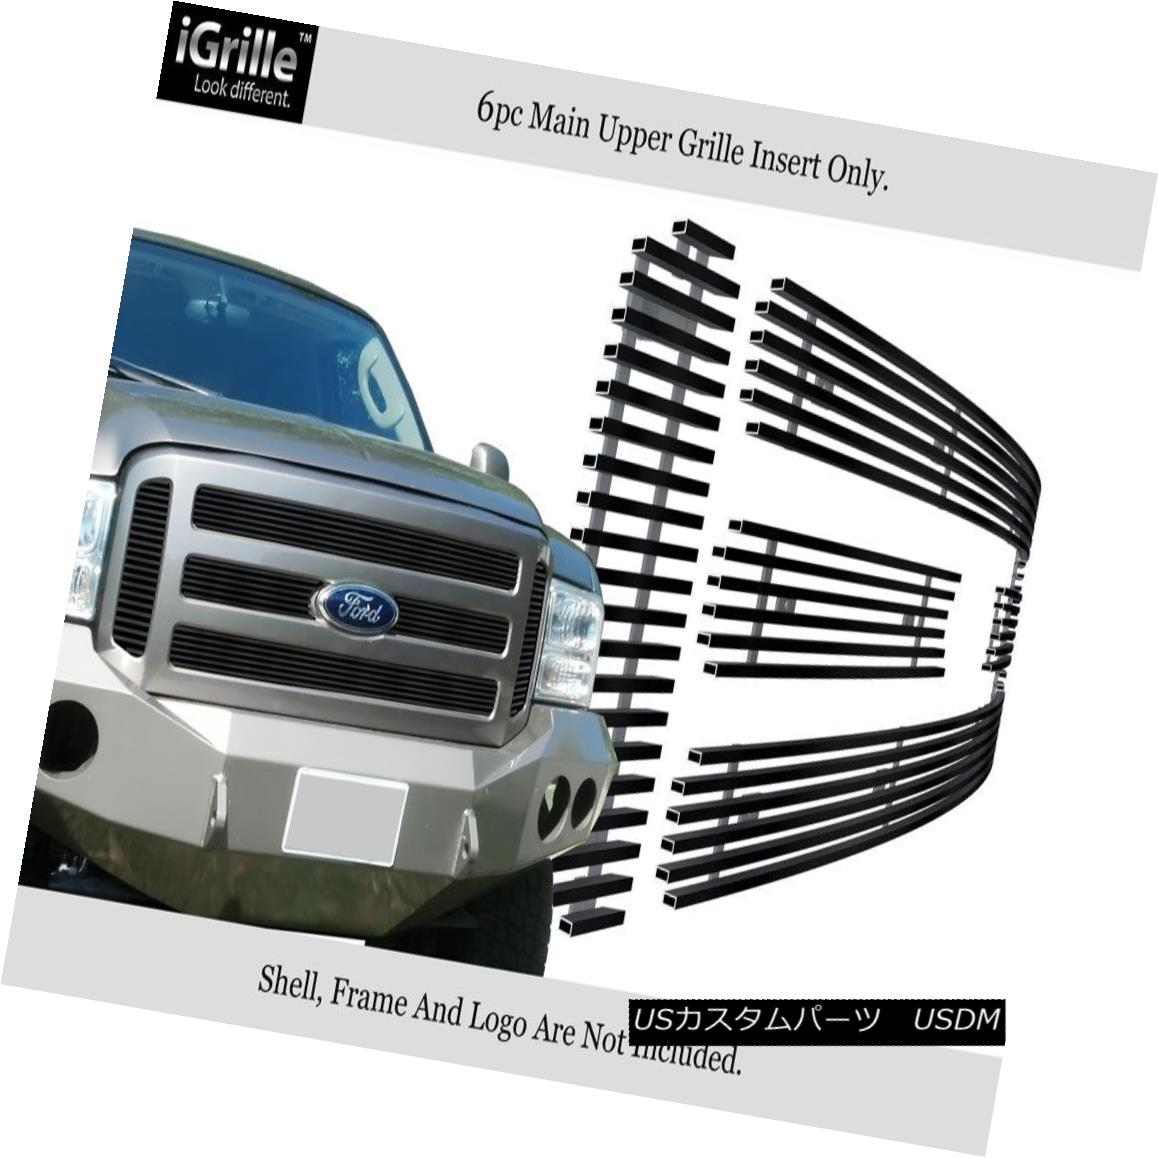 USグリル Fits 05-07 Ford F250/F350/Excursion Black Stainless Steel Billet Grille フィット05-07 Ford F250 / F350 / Excu rsionブラックステンレス鋼ビレットグリル